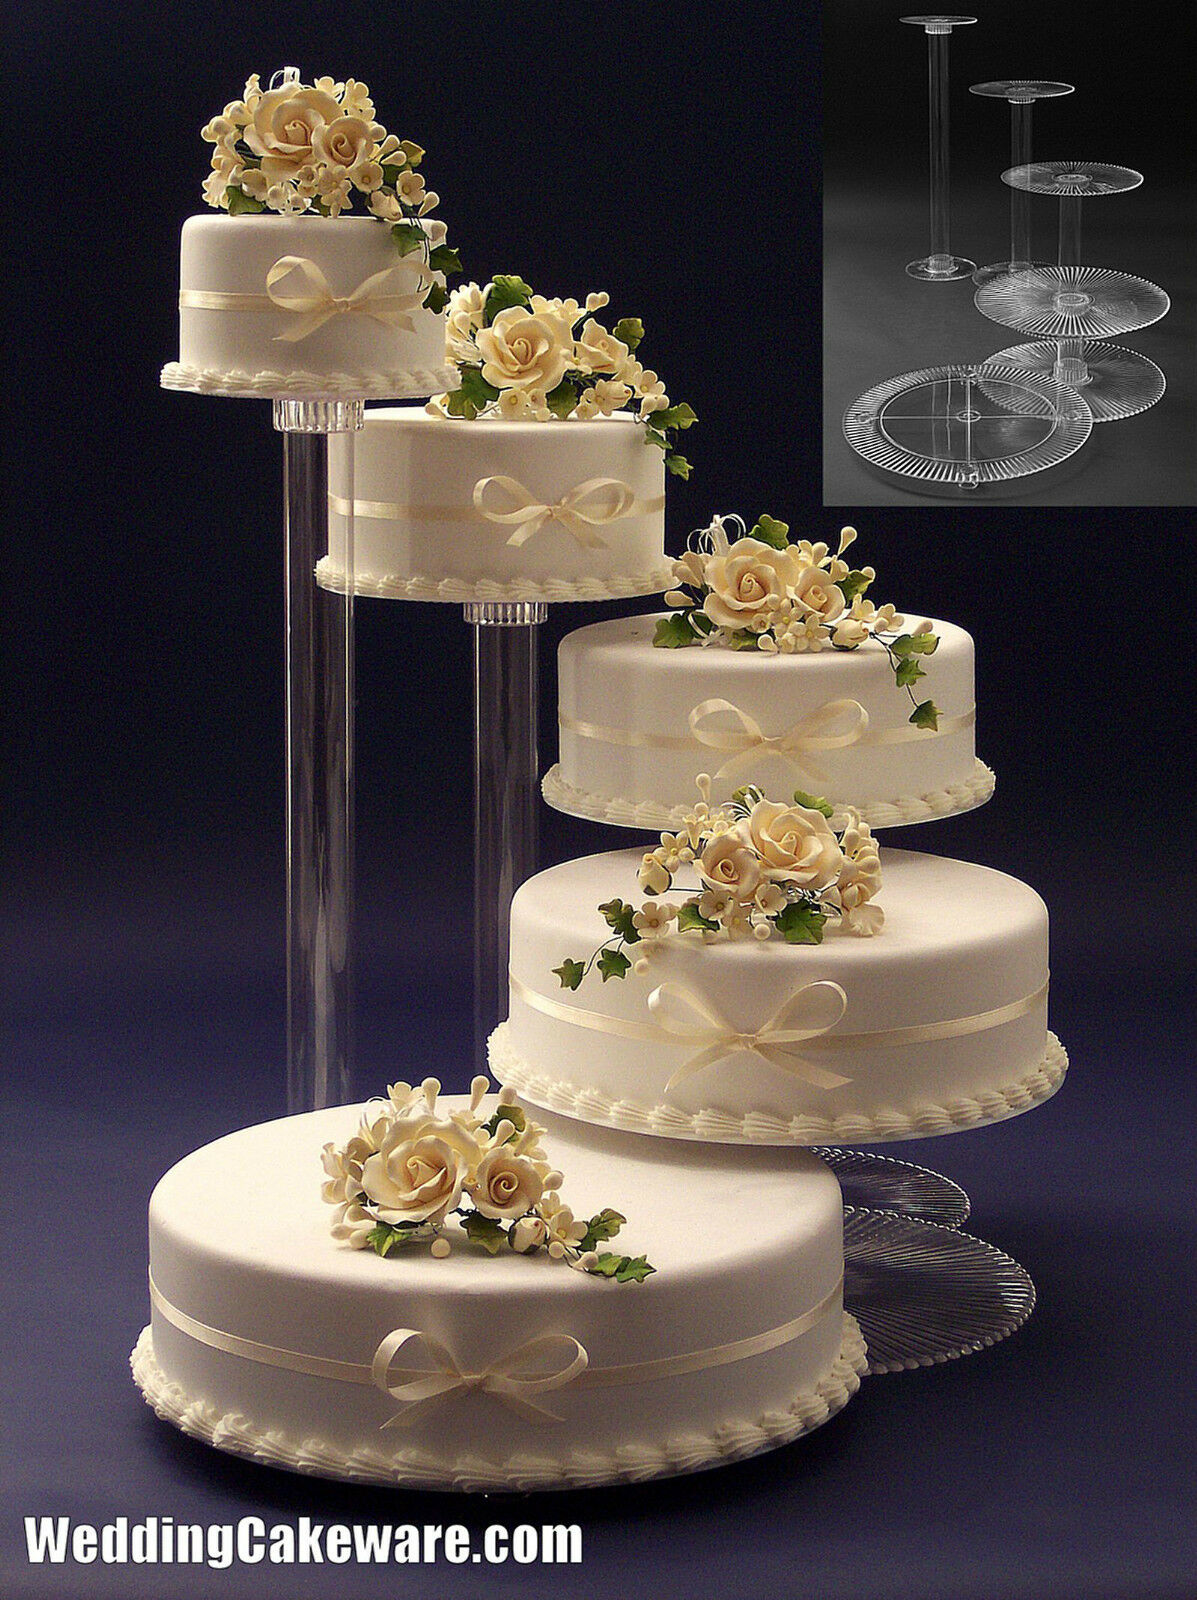 wedding cake standa cake stand wedding bling wedding cake stand cupcake base 25608